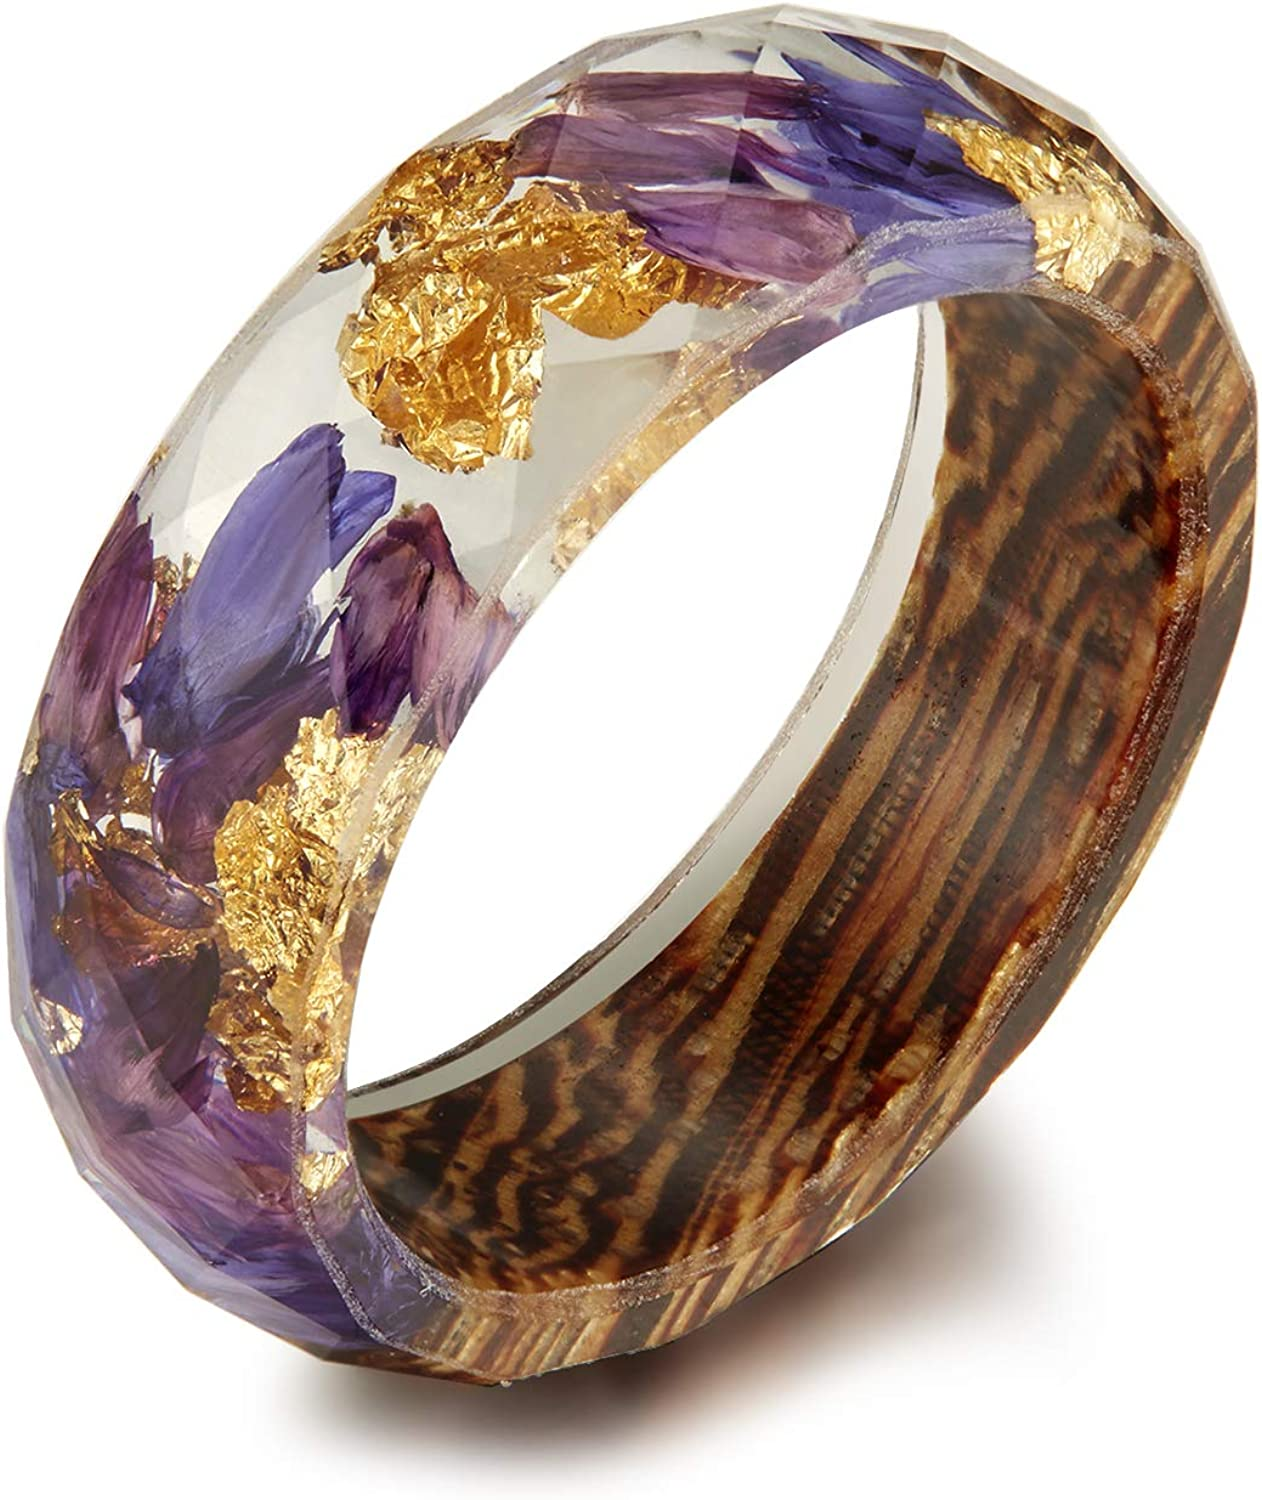 qanyue Geometry Super intense SALE Section Diamond Cut Gold with Foil Insided Ring free shipping